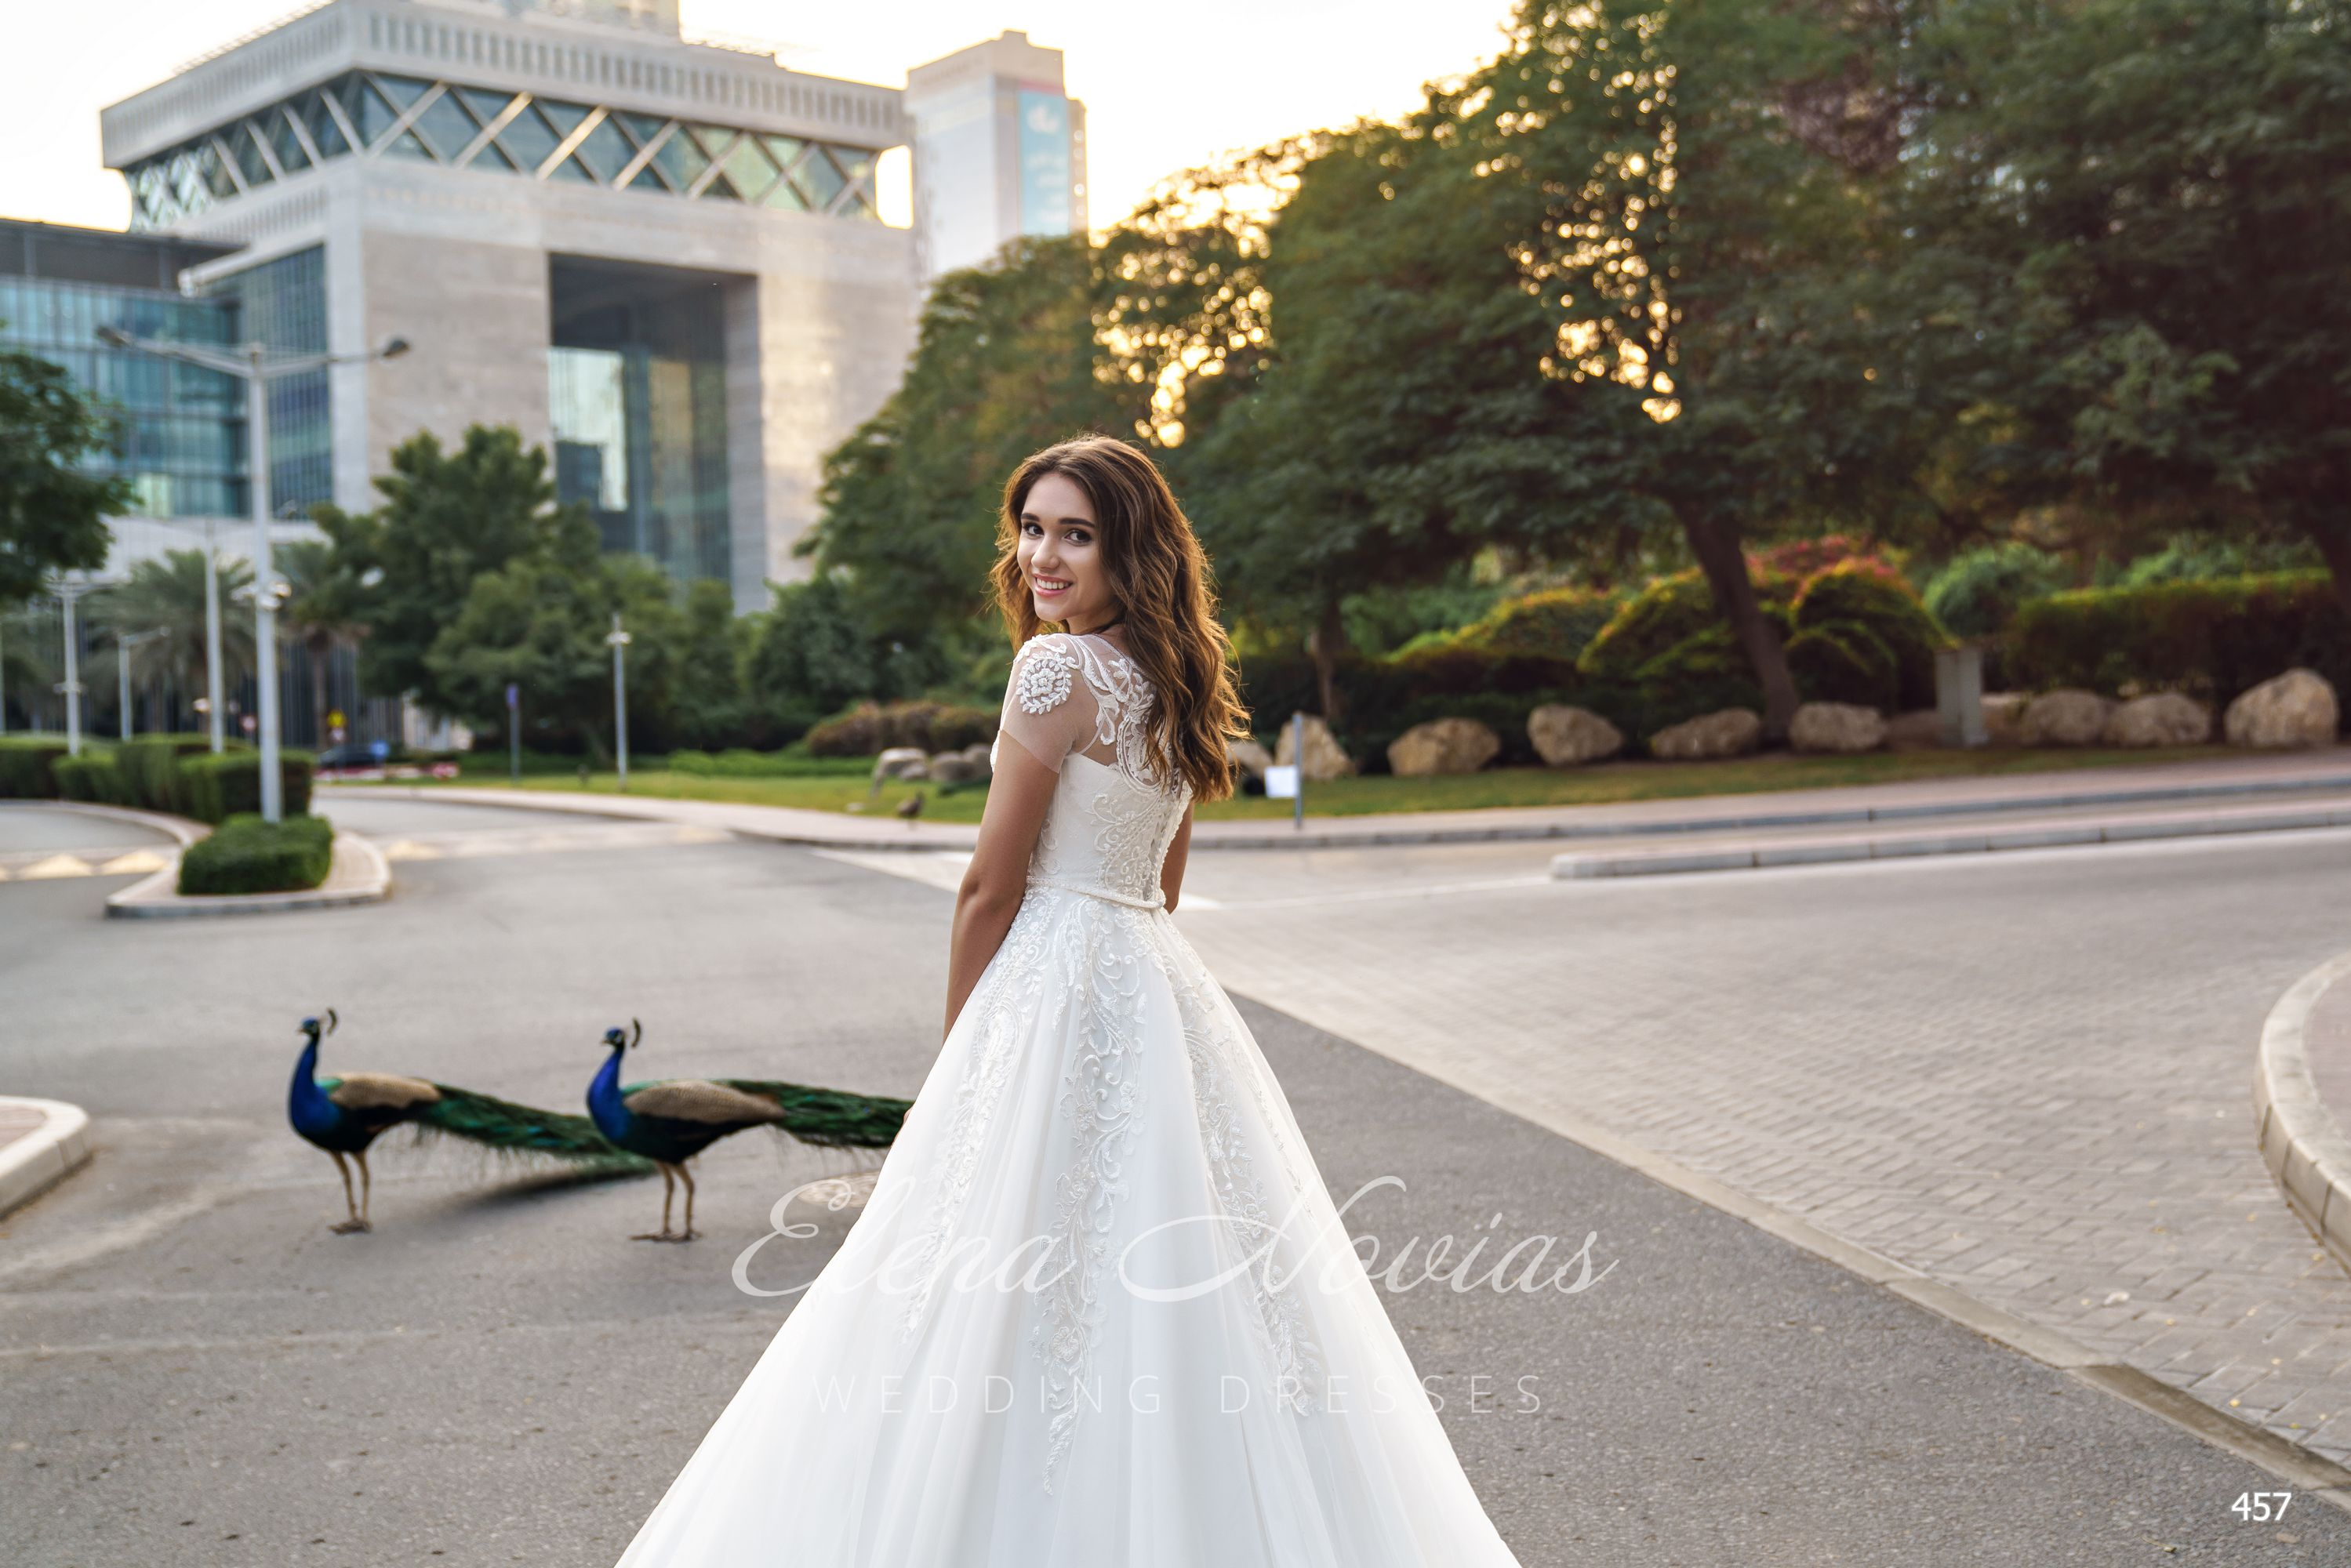 Wedding dresses 457 3